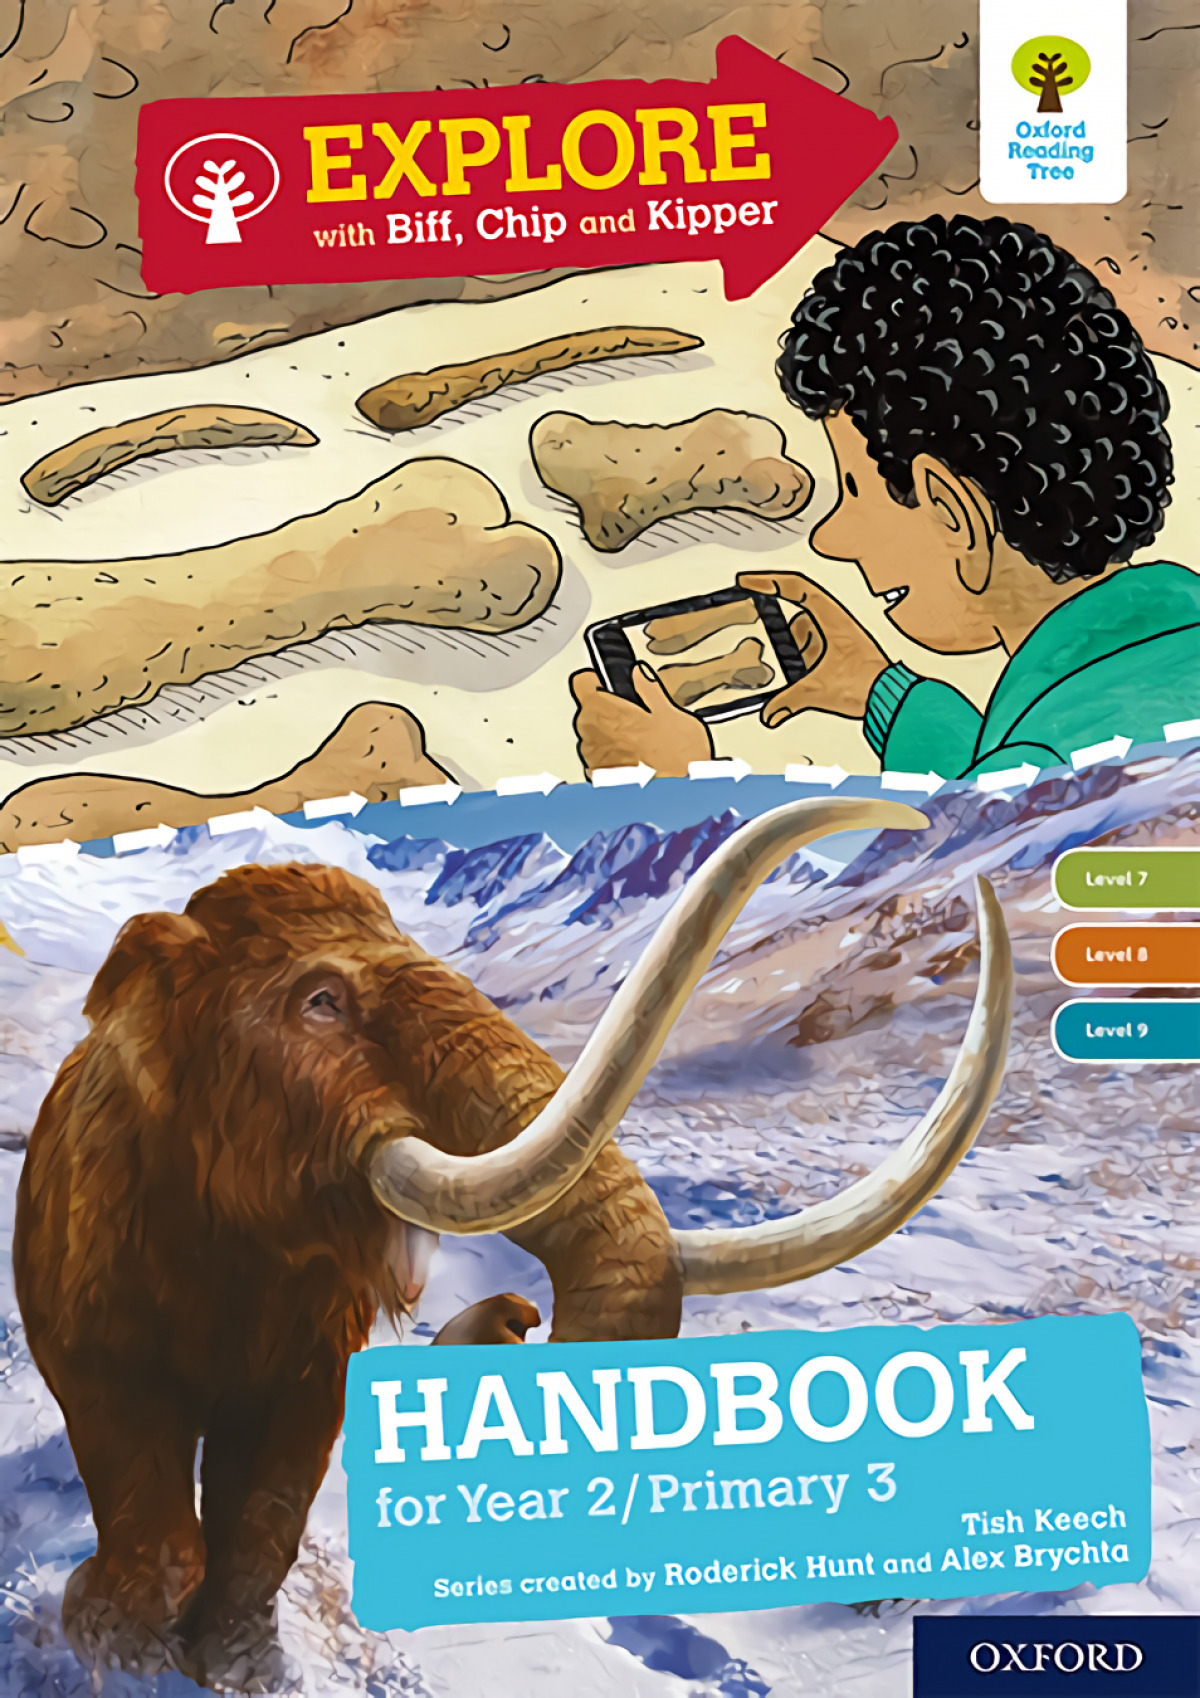 Oxford Reading Tree Explore with Biff, Chip and Kipper Levels 7 to 9. Year 2/P3 Handbook